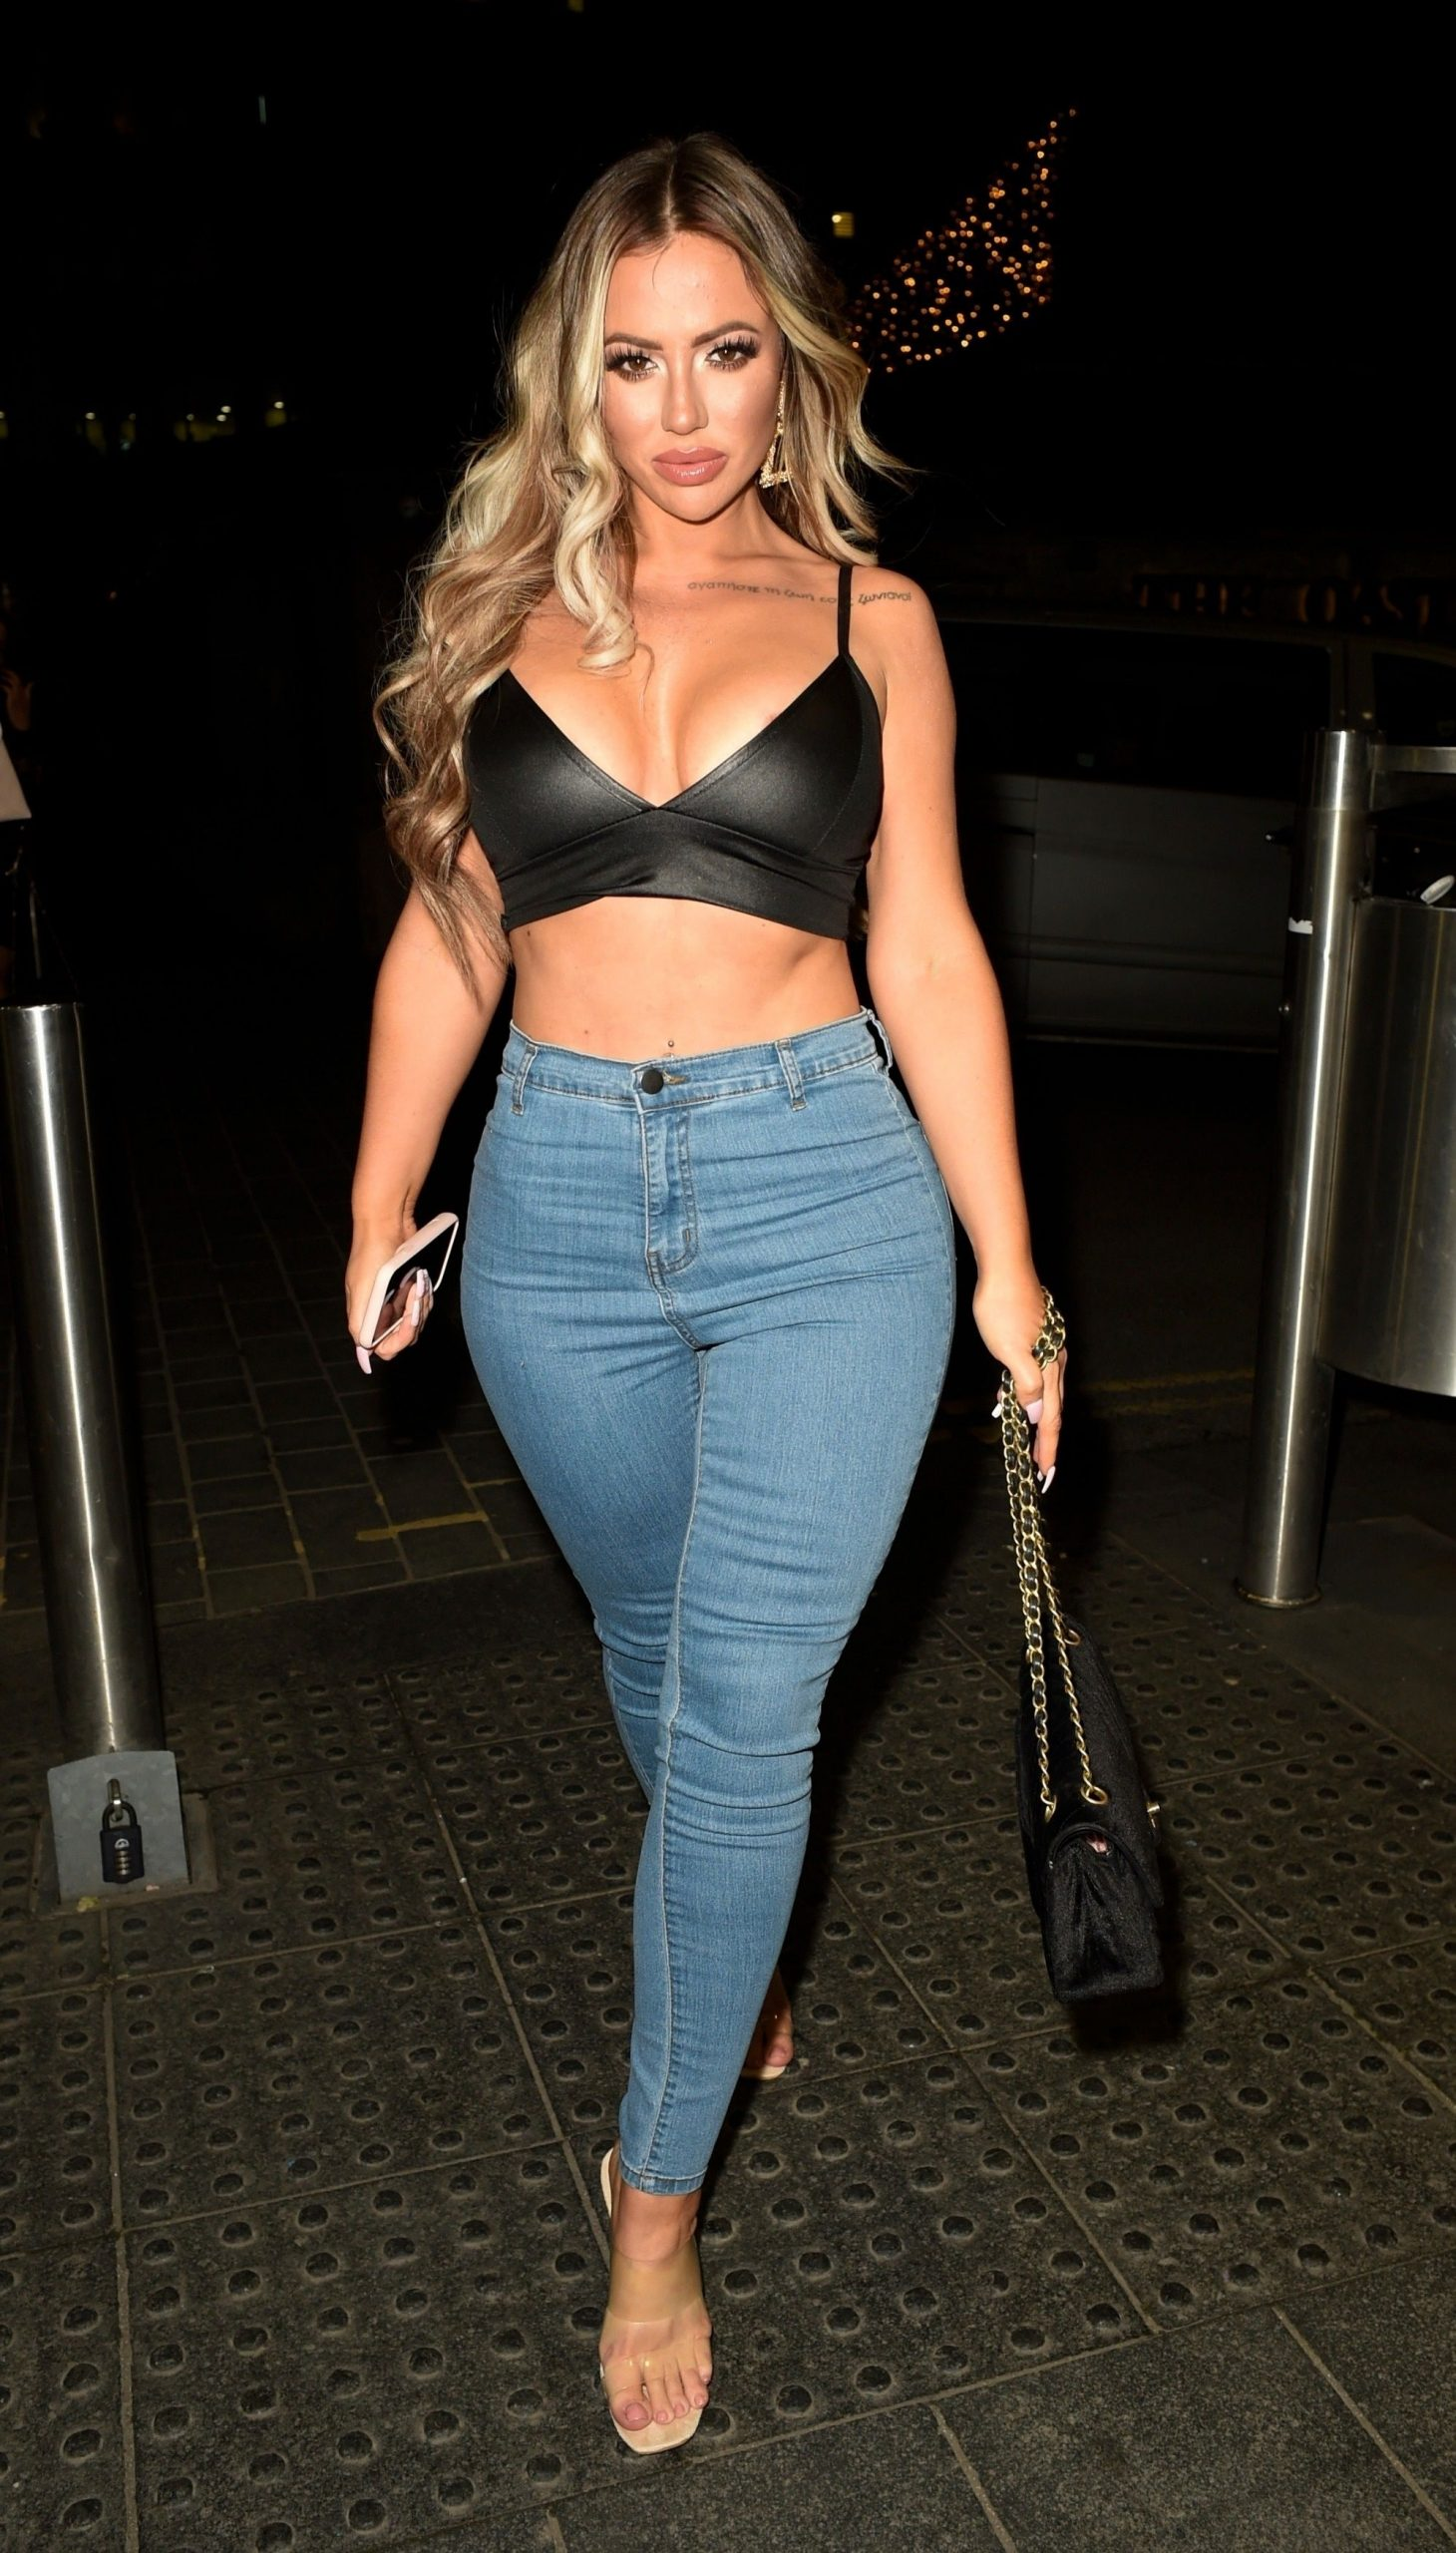 Holly Hagan Shows Off Her Sexy Figure On A Girls Night Out 0011